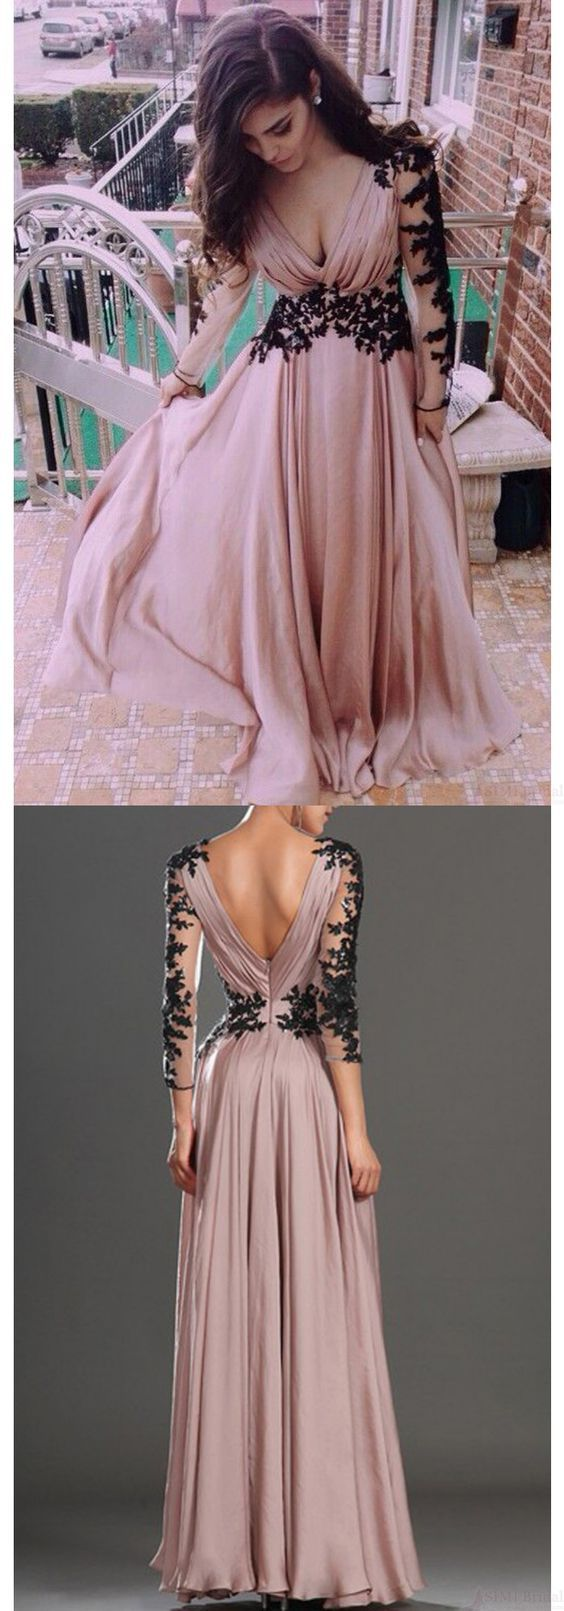 Prom Dresses,Evening Dress,Blush Pink Prom Dresses,Vintage Prom Gown,Women Boho Long Sleeves Plus Si on Luulla